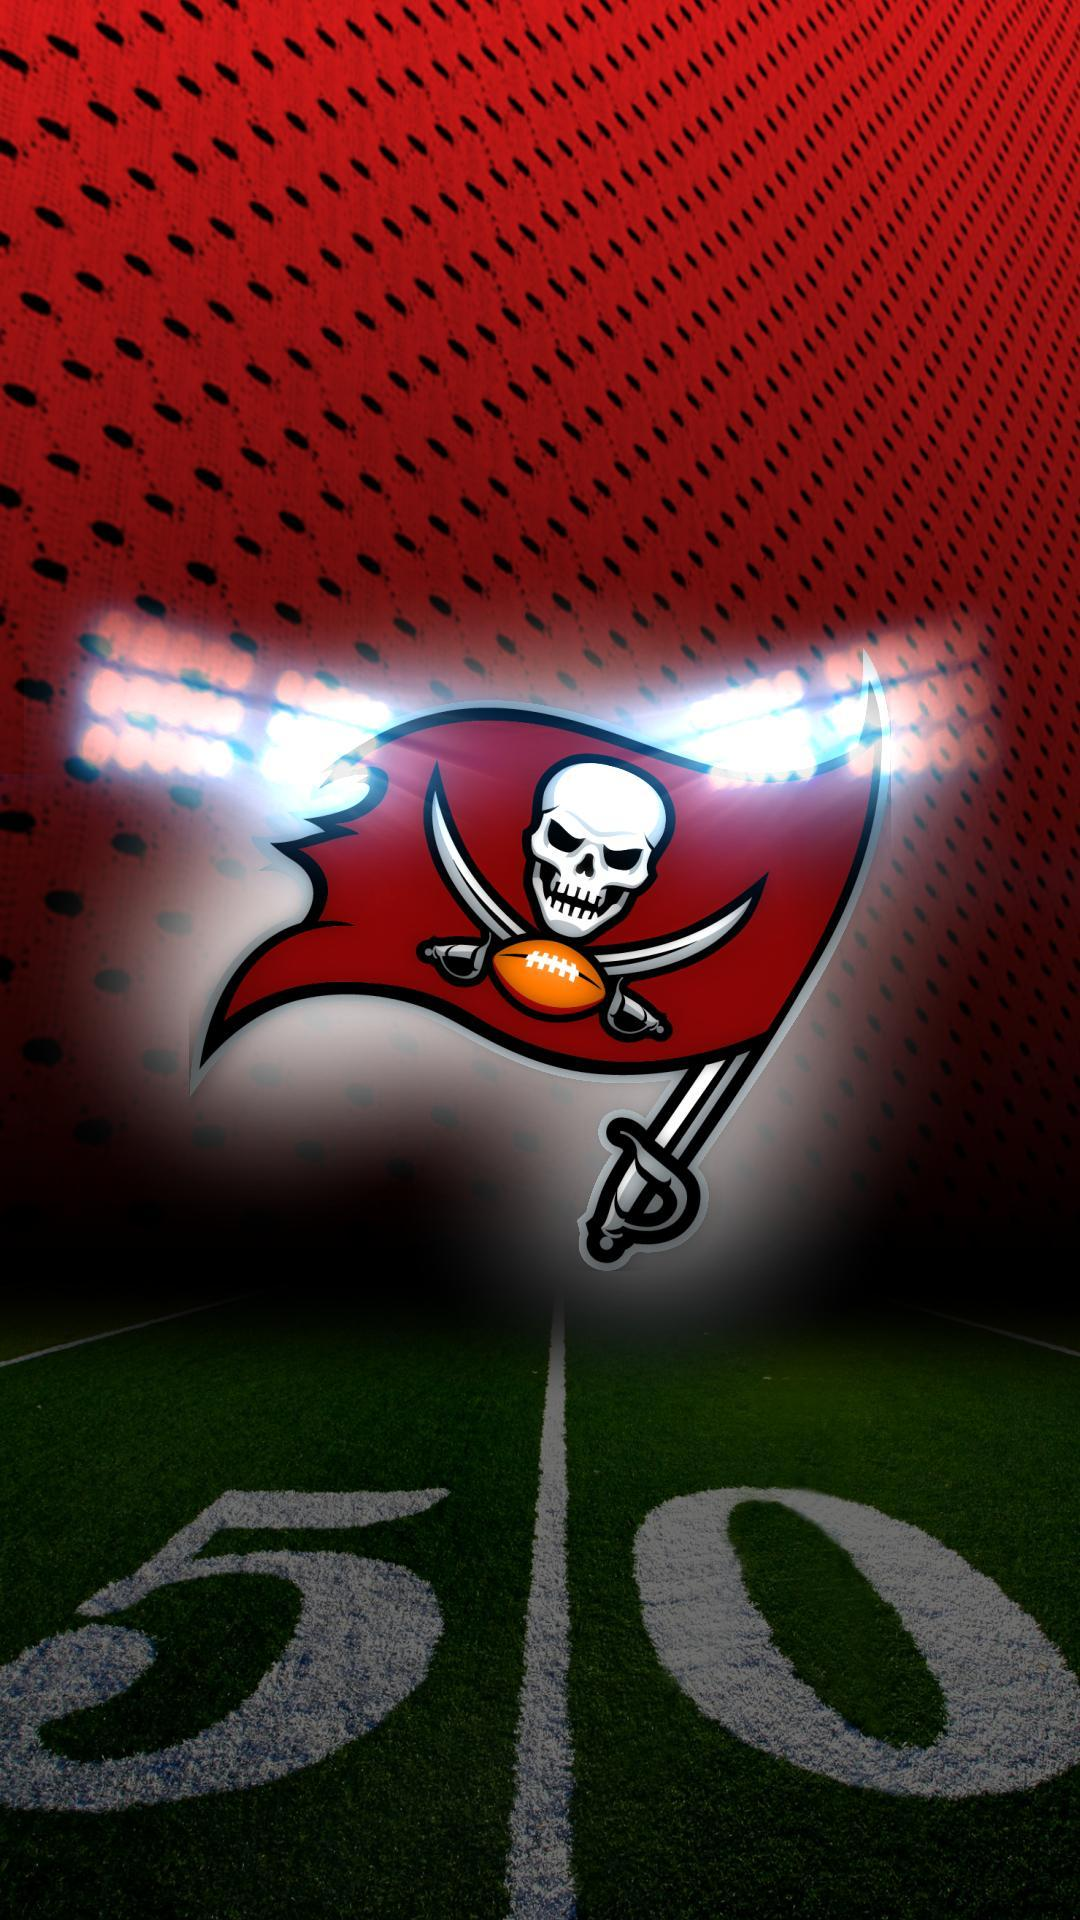 tampa bay bucs wallpapers wallpaper cave tampa bay bucs wallpapers wallpaper cave